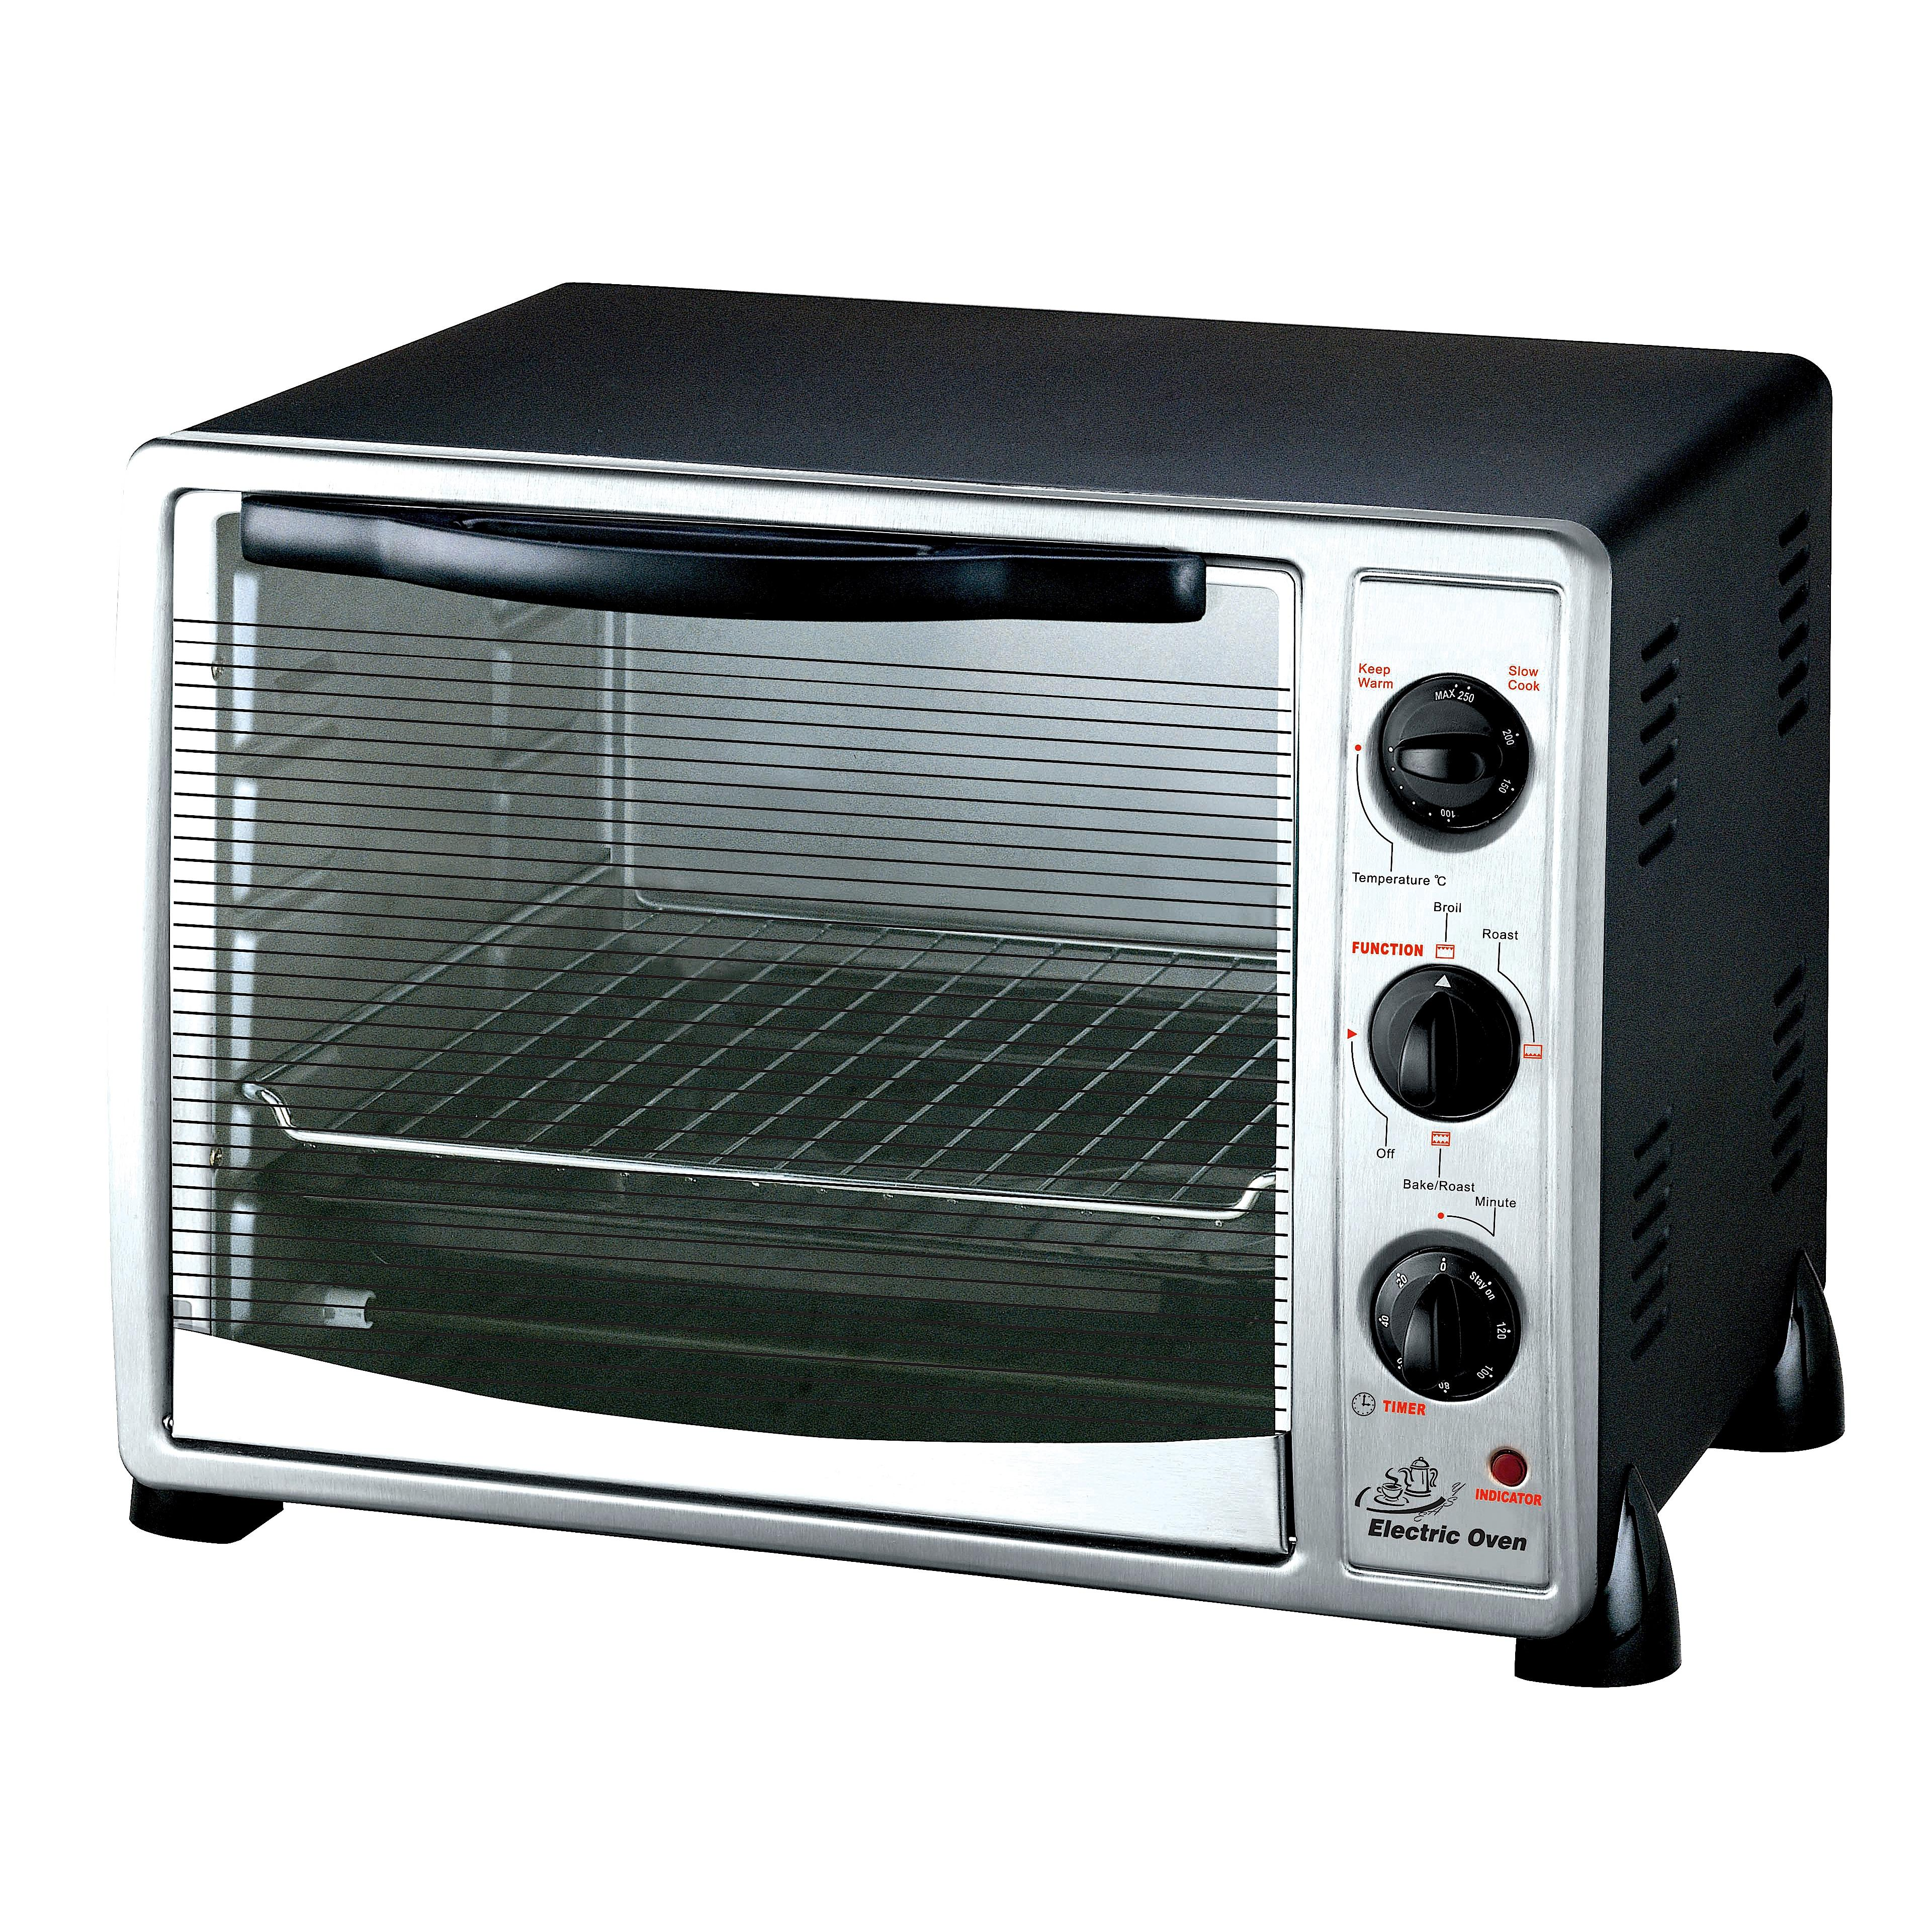 Signora Royal Oven 25 Lt